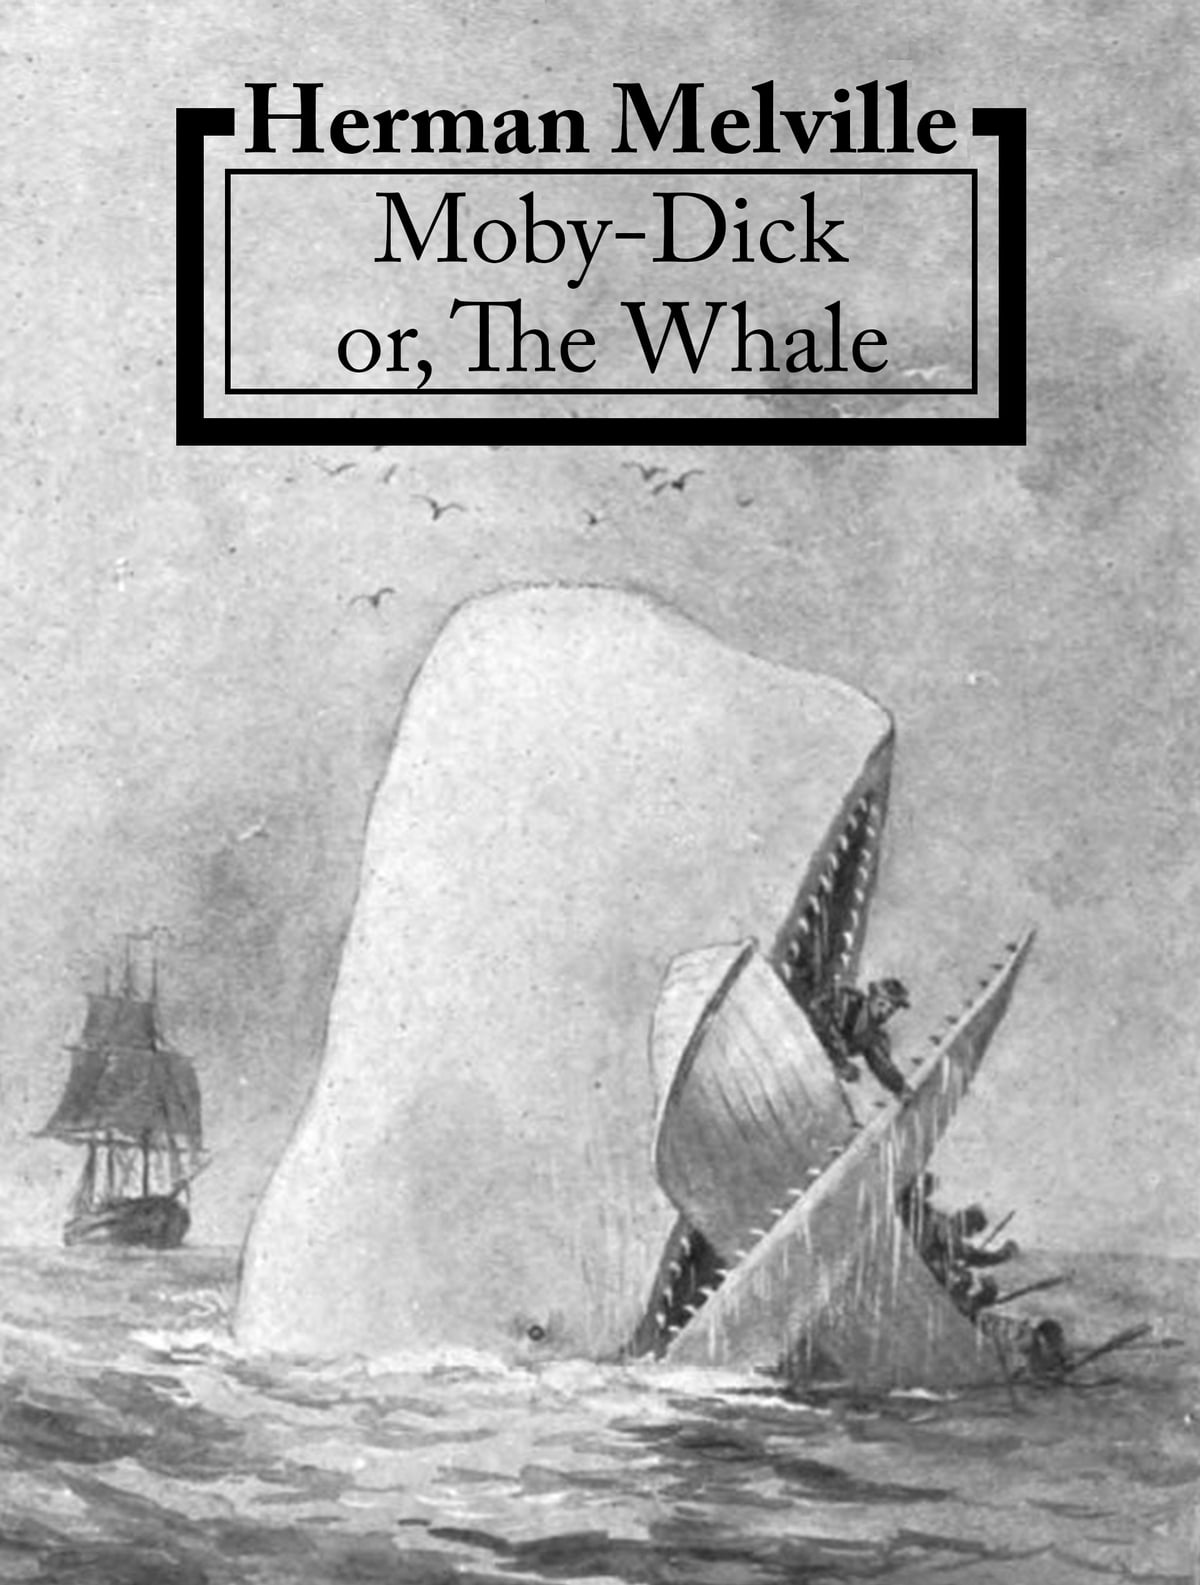 Hubris moby dick, sexy nude officer